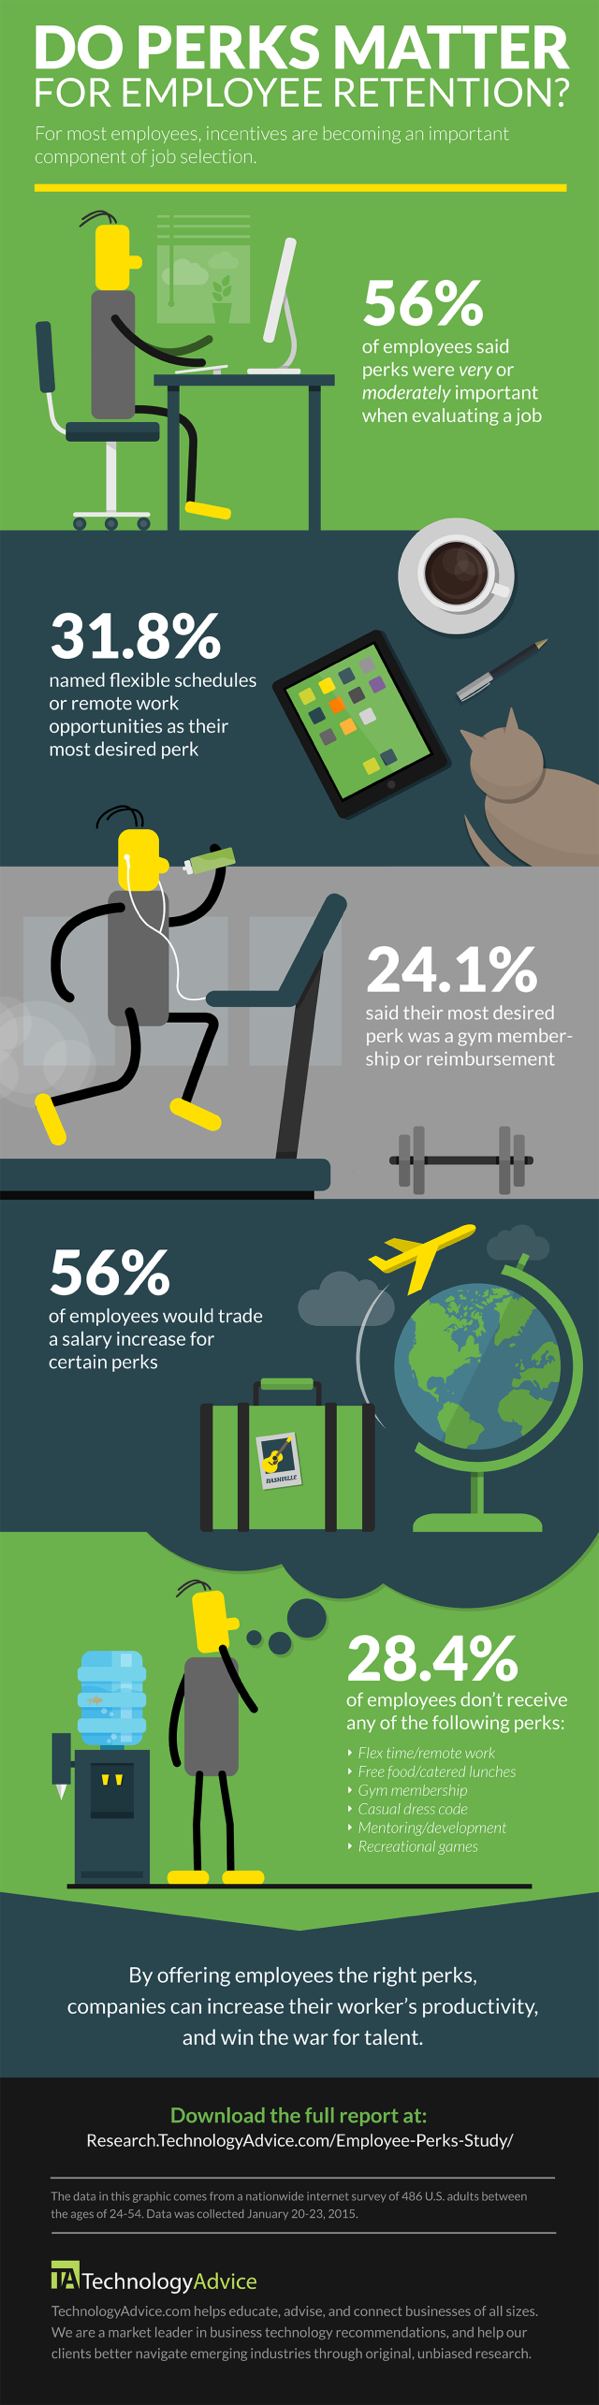 Workplace-Perks-Infographic-2015